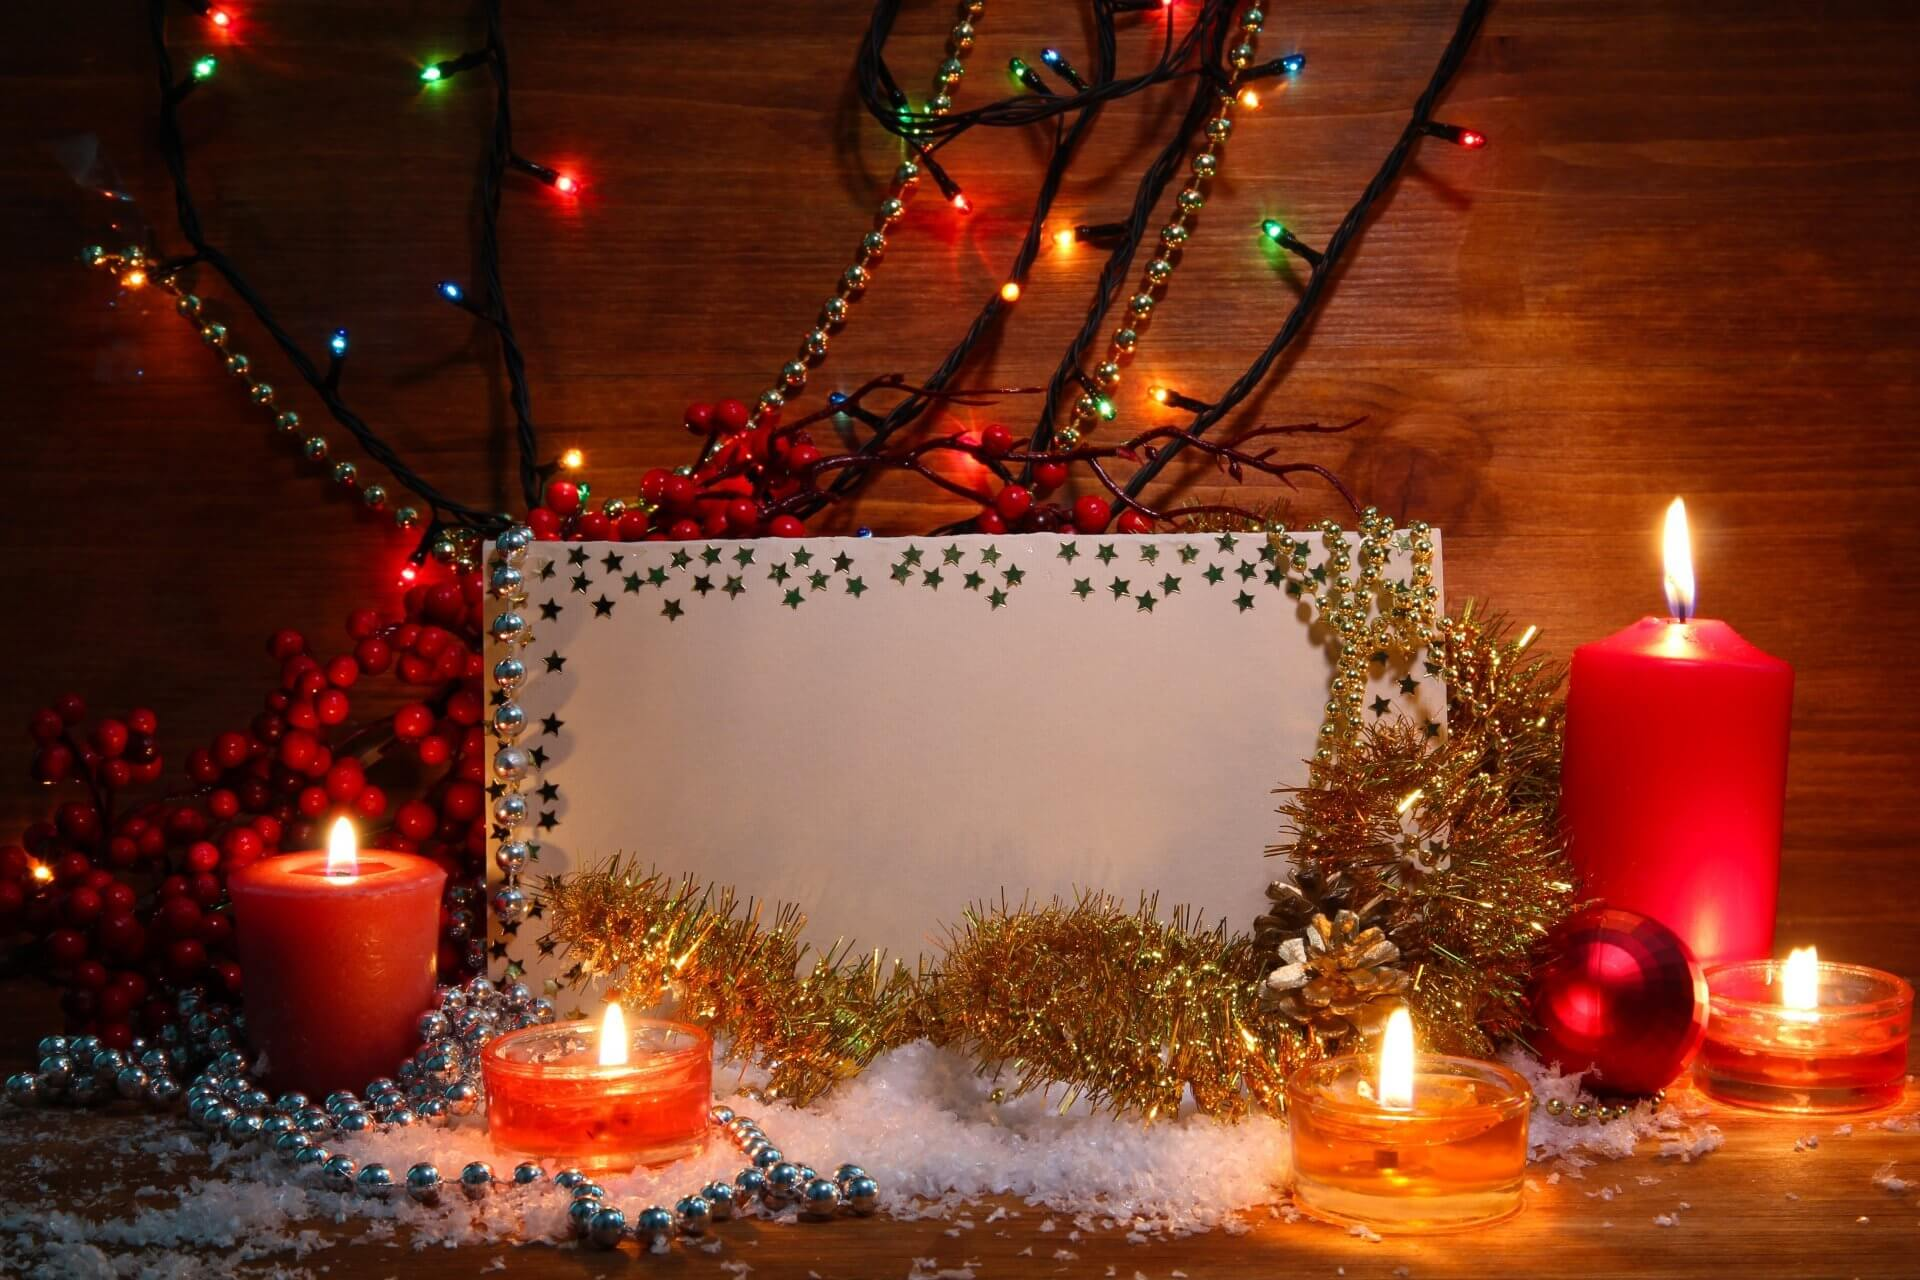 Candles, Beads, and Christmas Lights Place Card